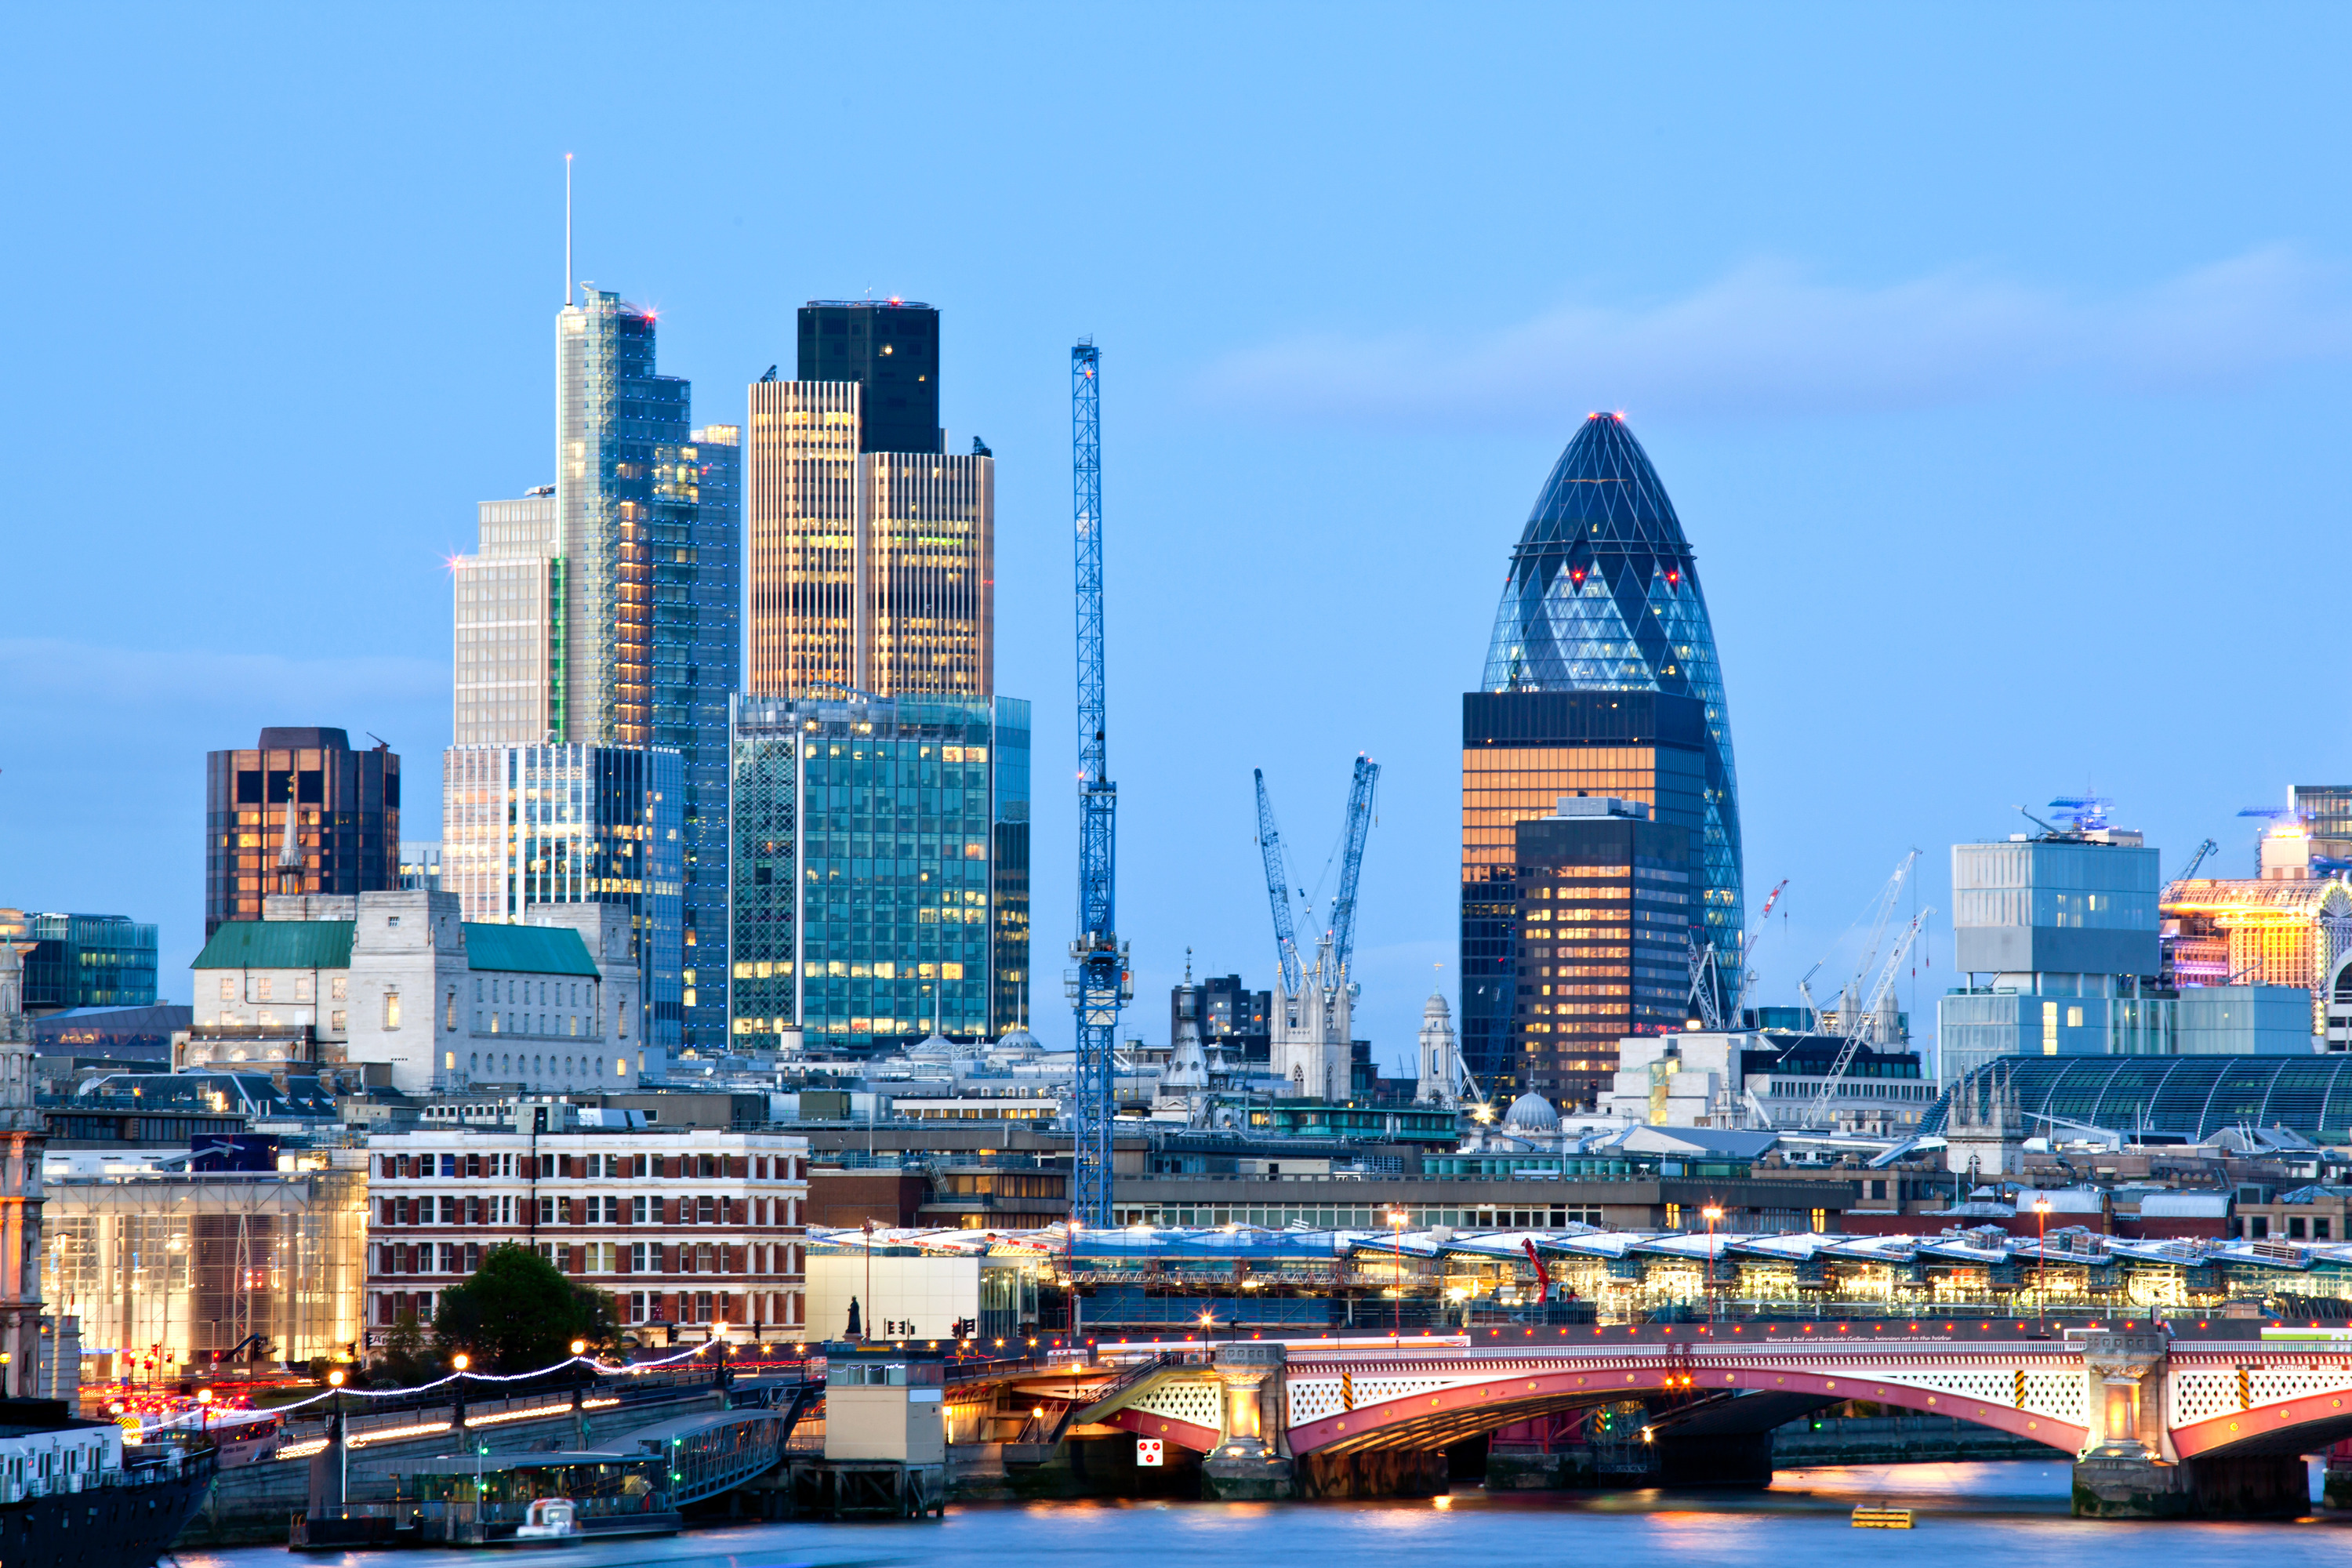 photodune-2761838-london-skylines-l